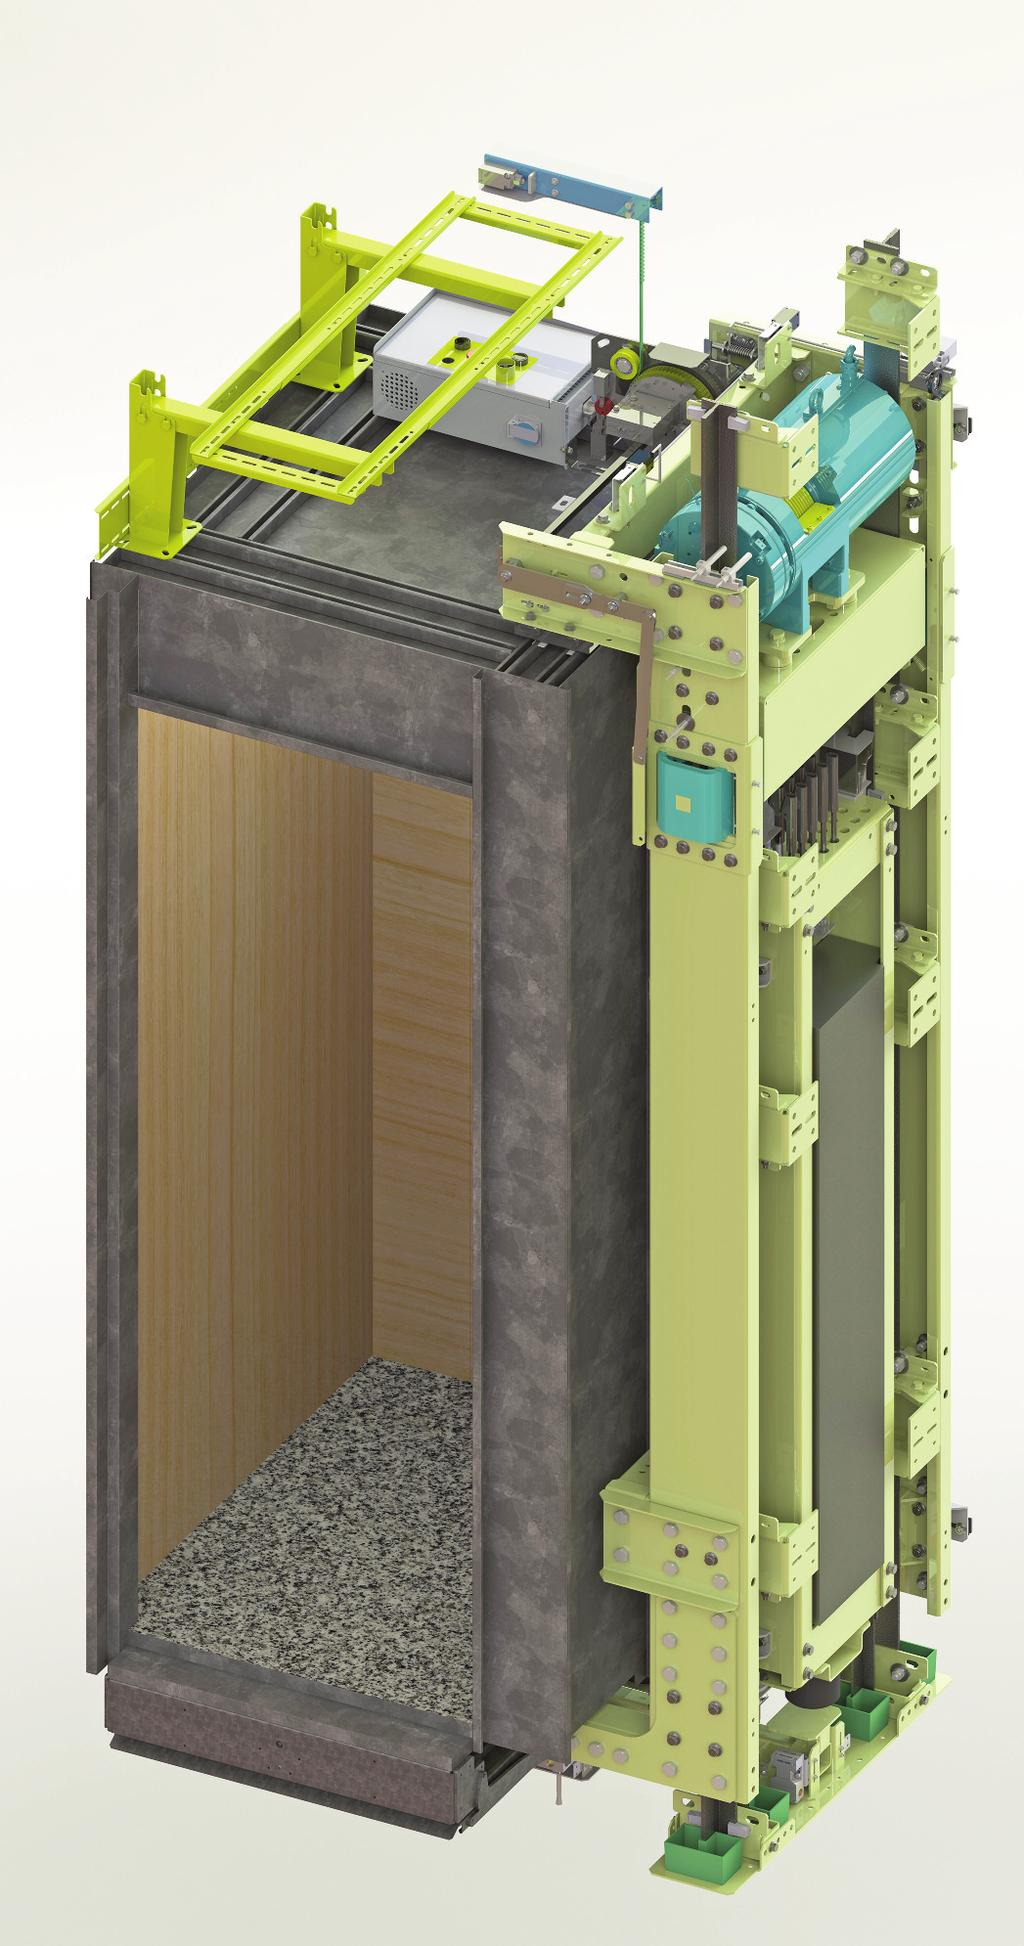 ADVANCED FEATURES WITTUR SOLUTION FOR MODERNISATION The, Wittur flexible machine roomless electric lift, offers an ideal solution for new lifts in existing buildings based on an innovative modular